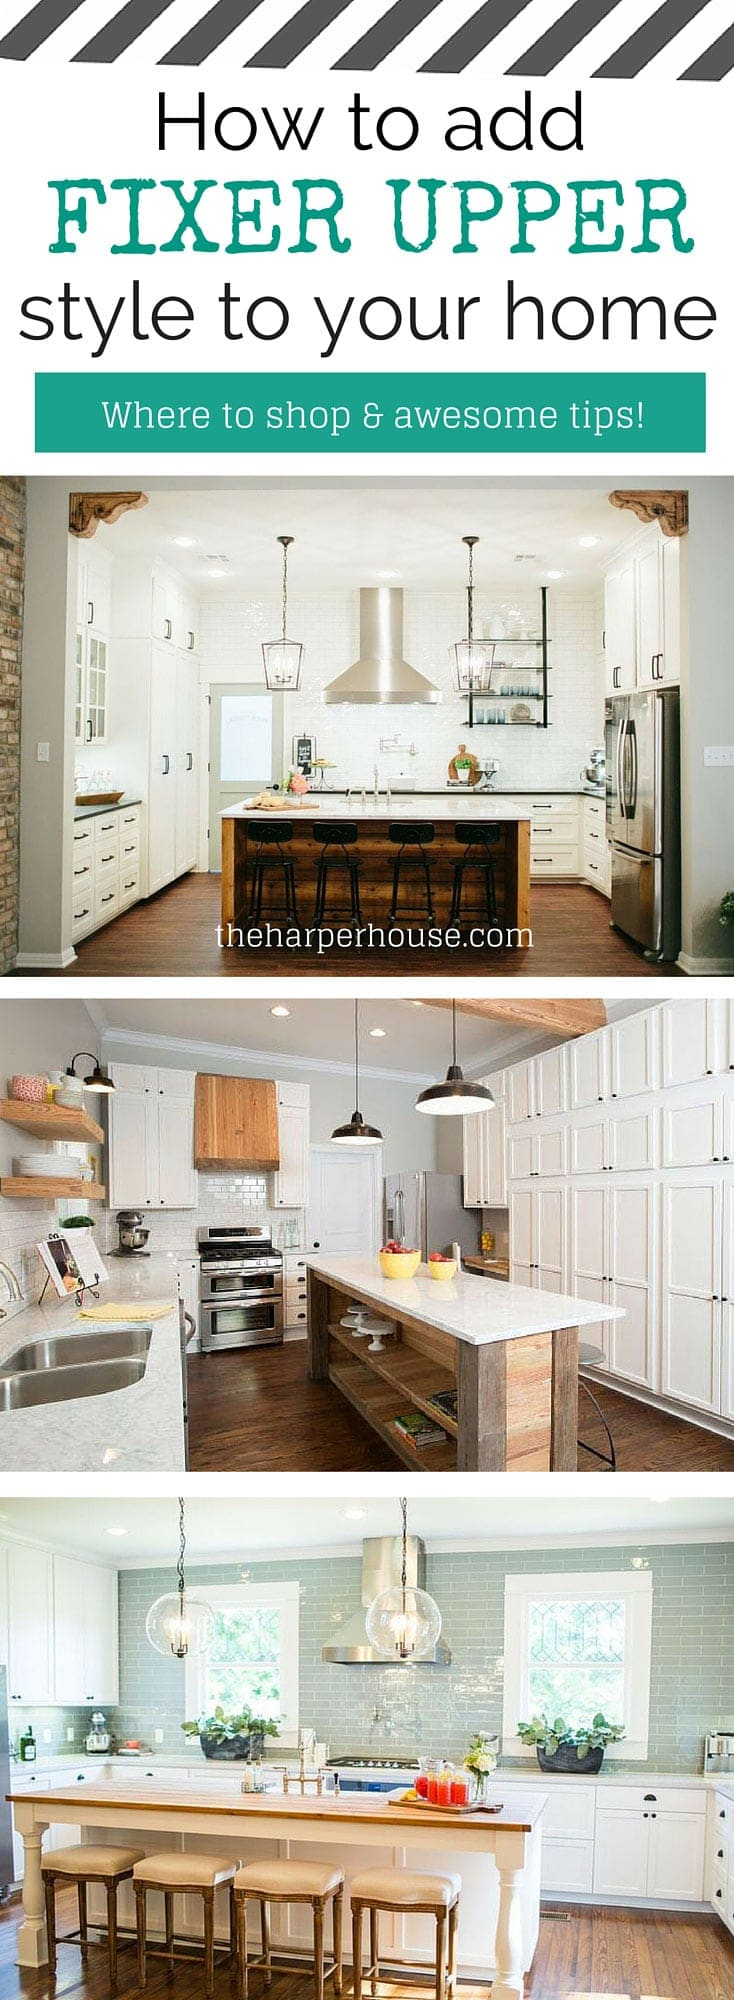 How To Add Fixer Upper Style To Your Home The Harper House